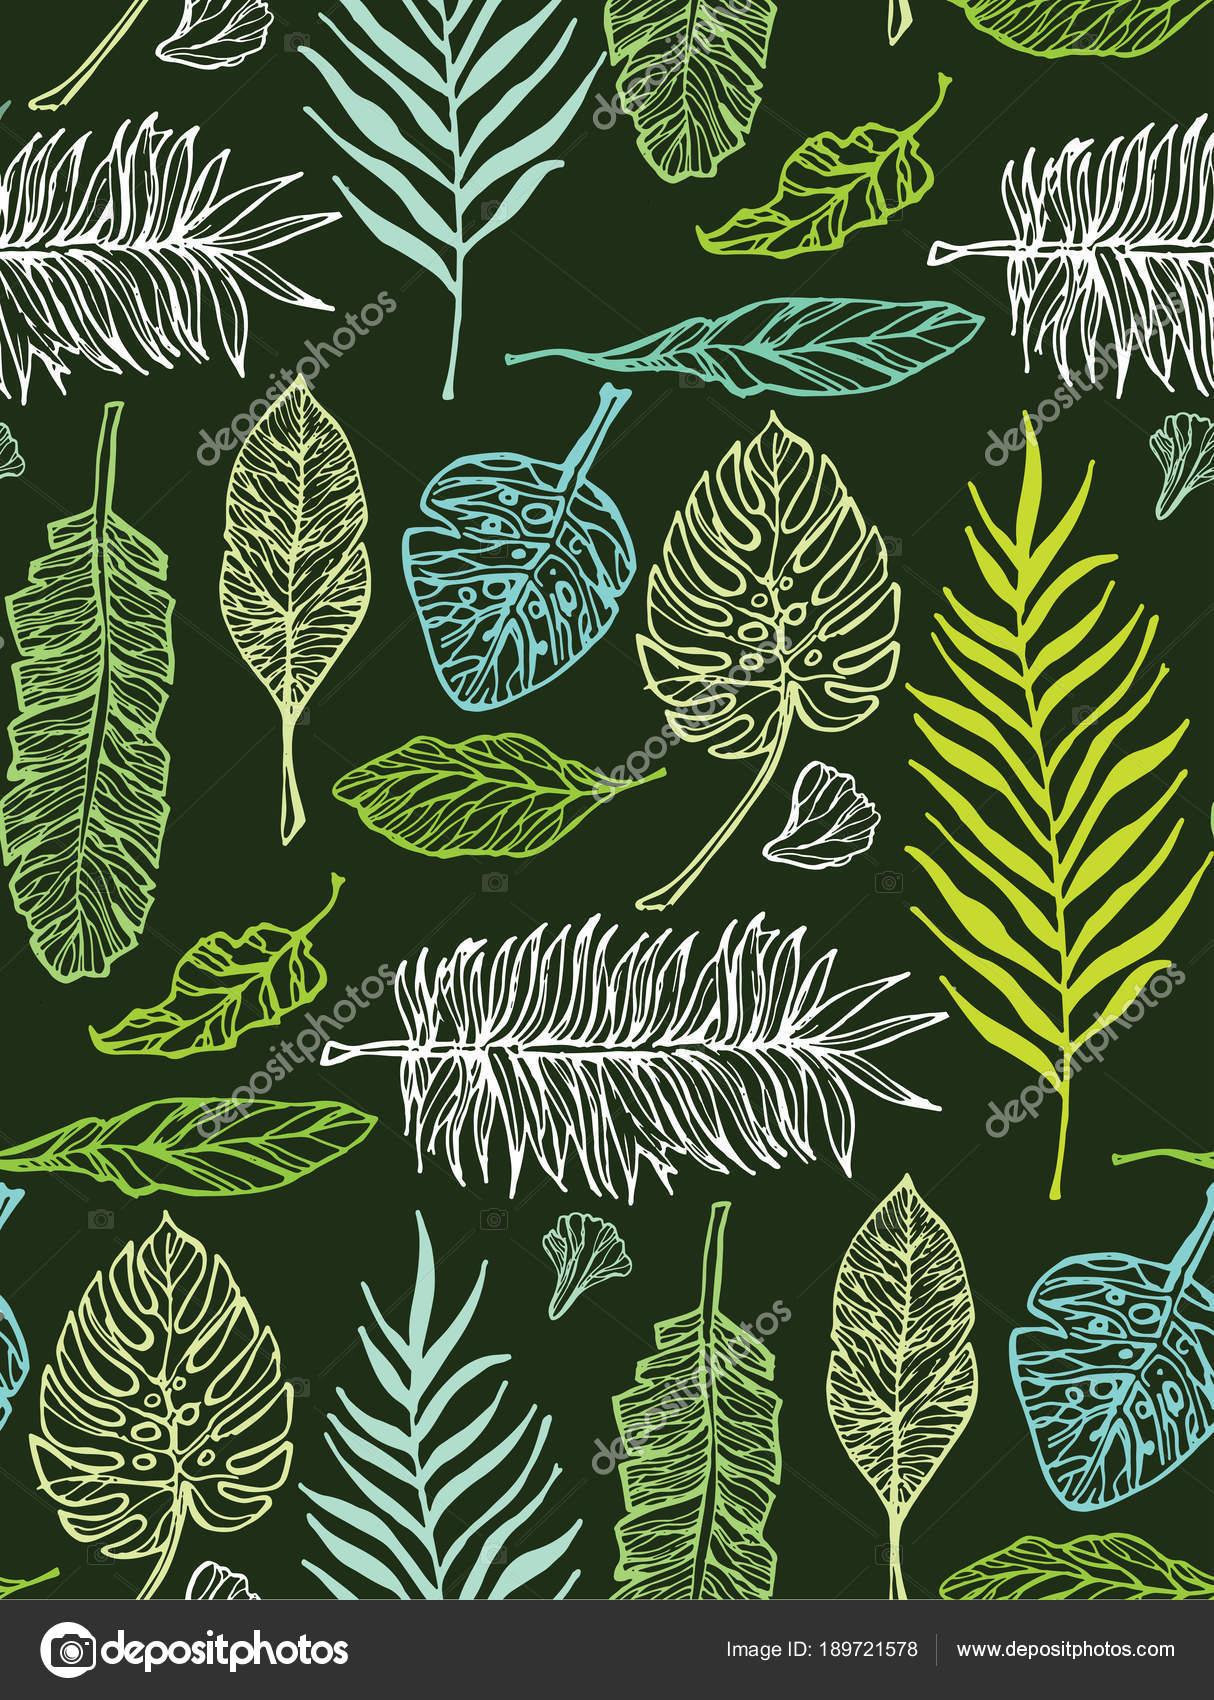 Doodle Tropical Leaves Hand Drawn Doodle Tropical Leaves Pattern Stock Vector C Jane55 189721578 Perfect for wedding, invitations purchased item: depositphotos